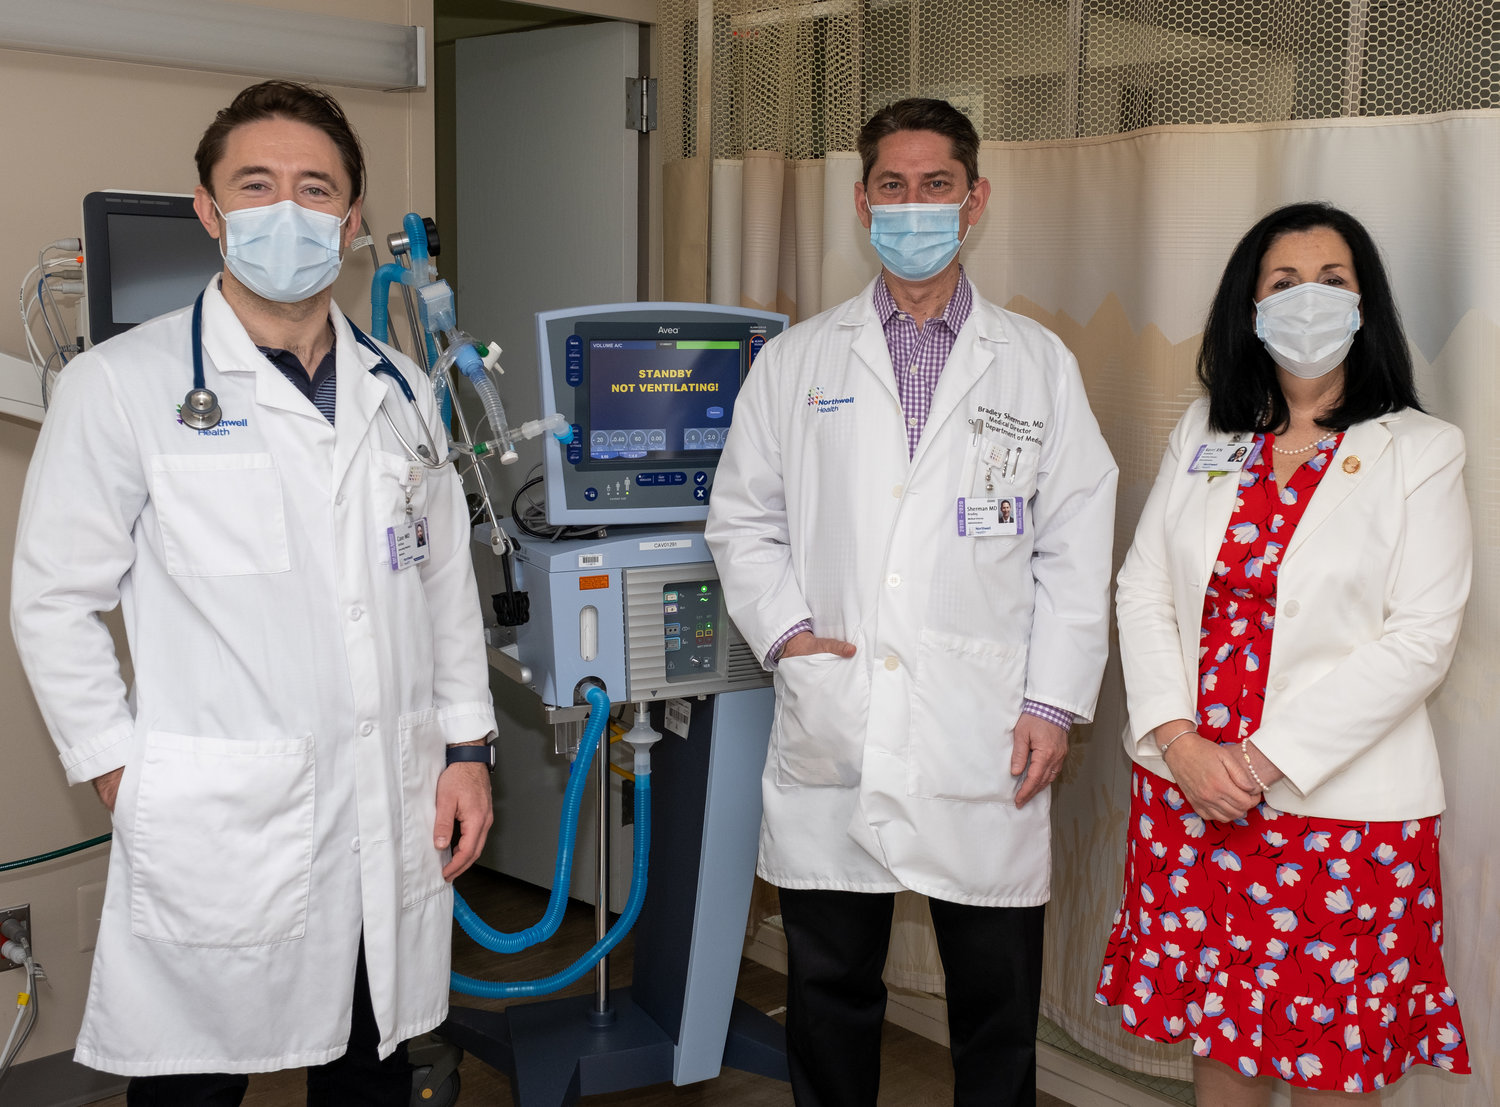 Dr. Josh Case, far left, Dr. Brad Sherman and Glen Cove Hospital's executive director, Kerri Scanlon, in the hospital's new Acute Ventilator Recovery Unit, the first of its kind in the country, which provides short-term care for patients who have been on ventilators, including those recovering from Covid-19.